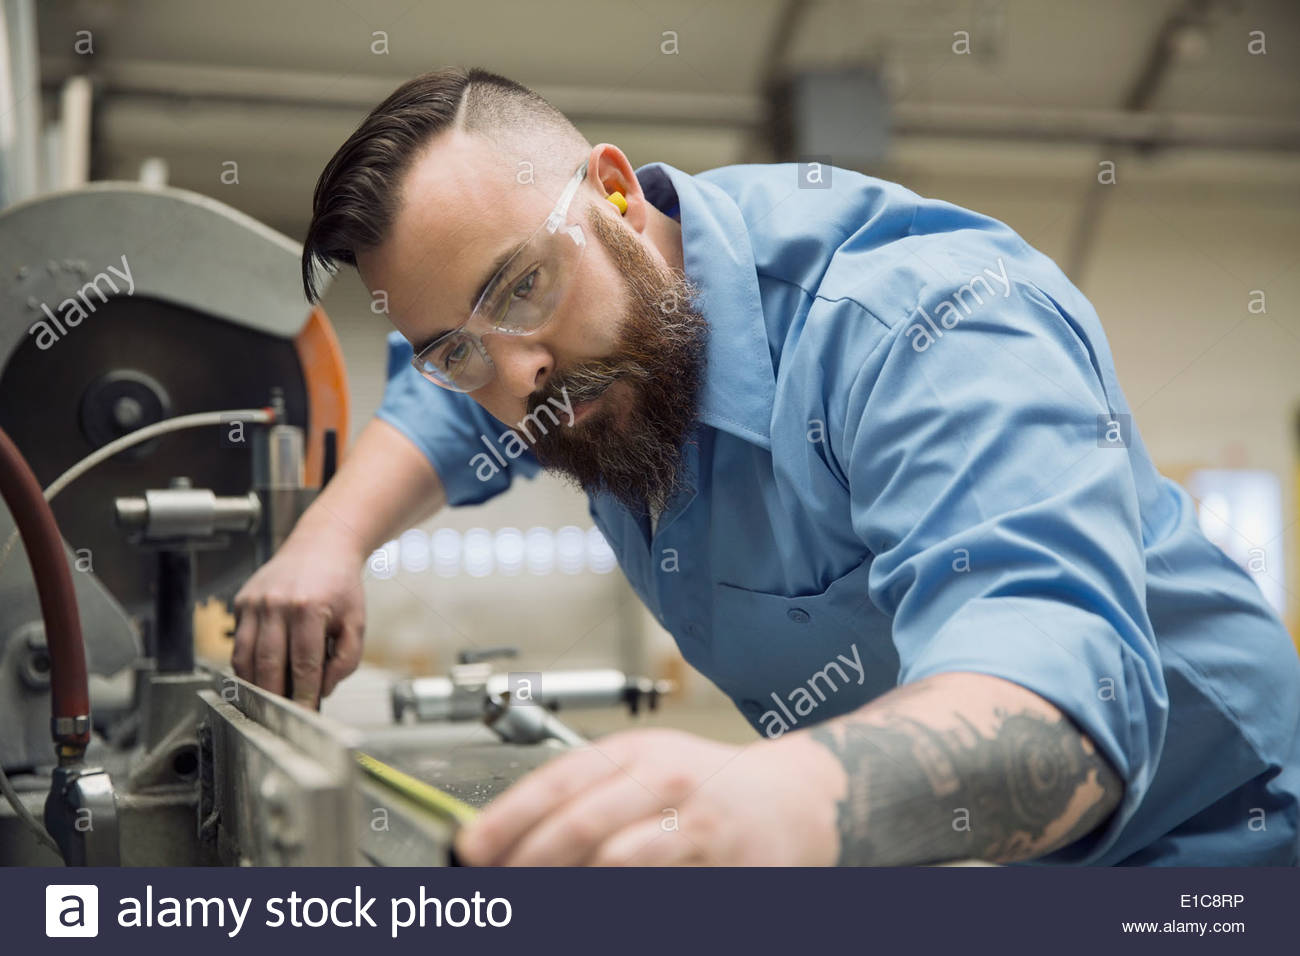 Worker operating machinery in manufacturing plant - Stock Image